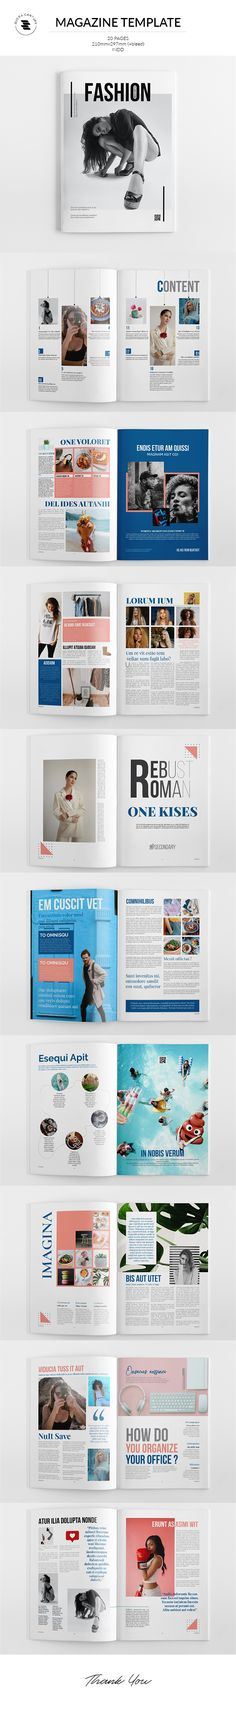 Magazine Template, Photo Displays, Layout, Lettering, Templates, Fashion, Role Models, Moda, Calligraphy